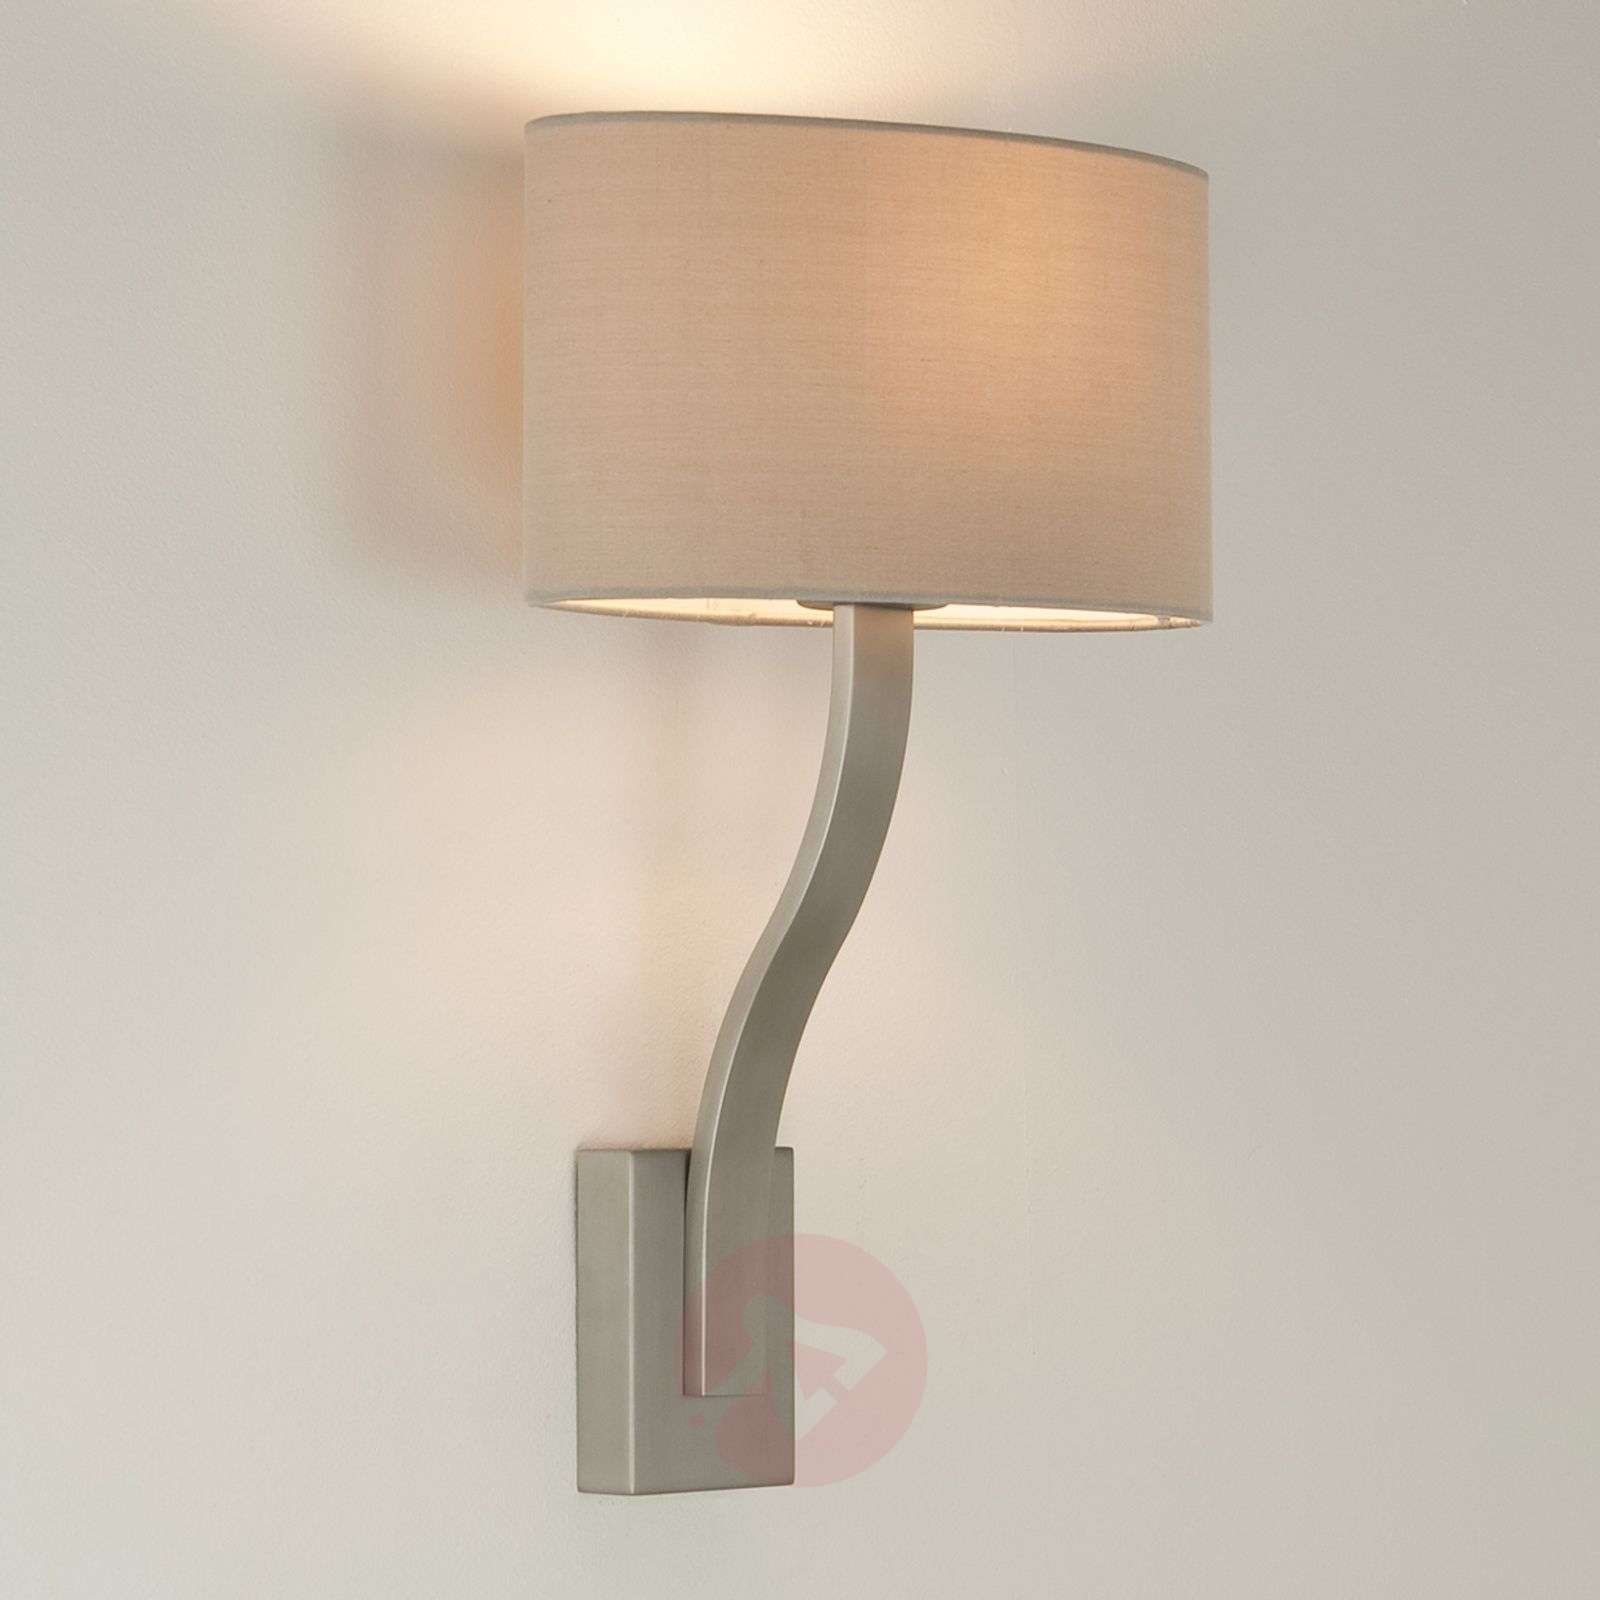 Sofia Wall Light Attractively Shaped Matte Nickel-1020430-01